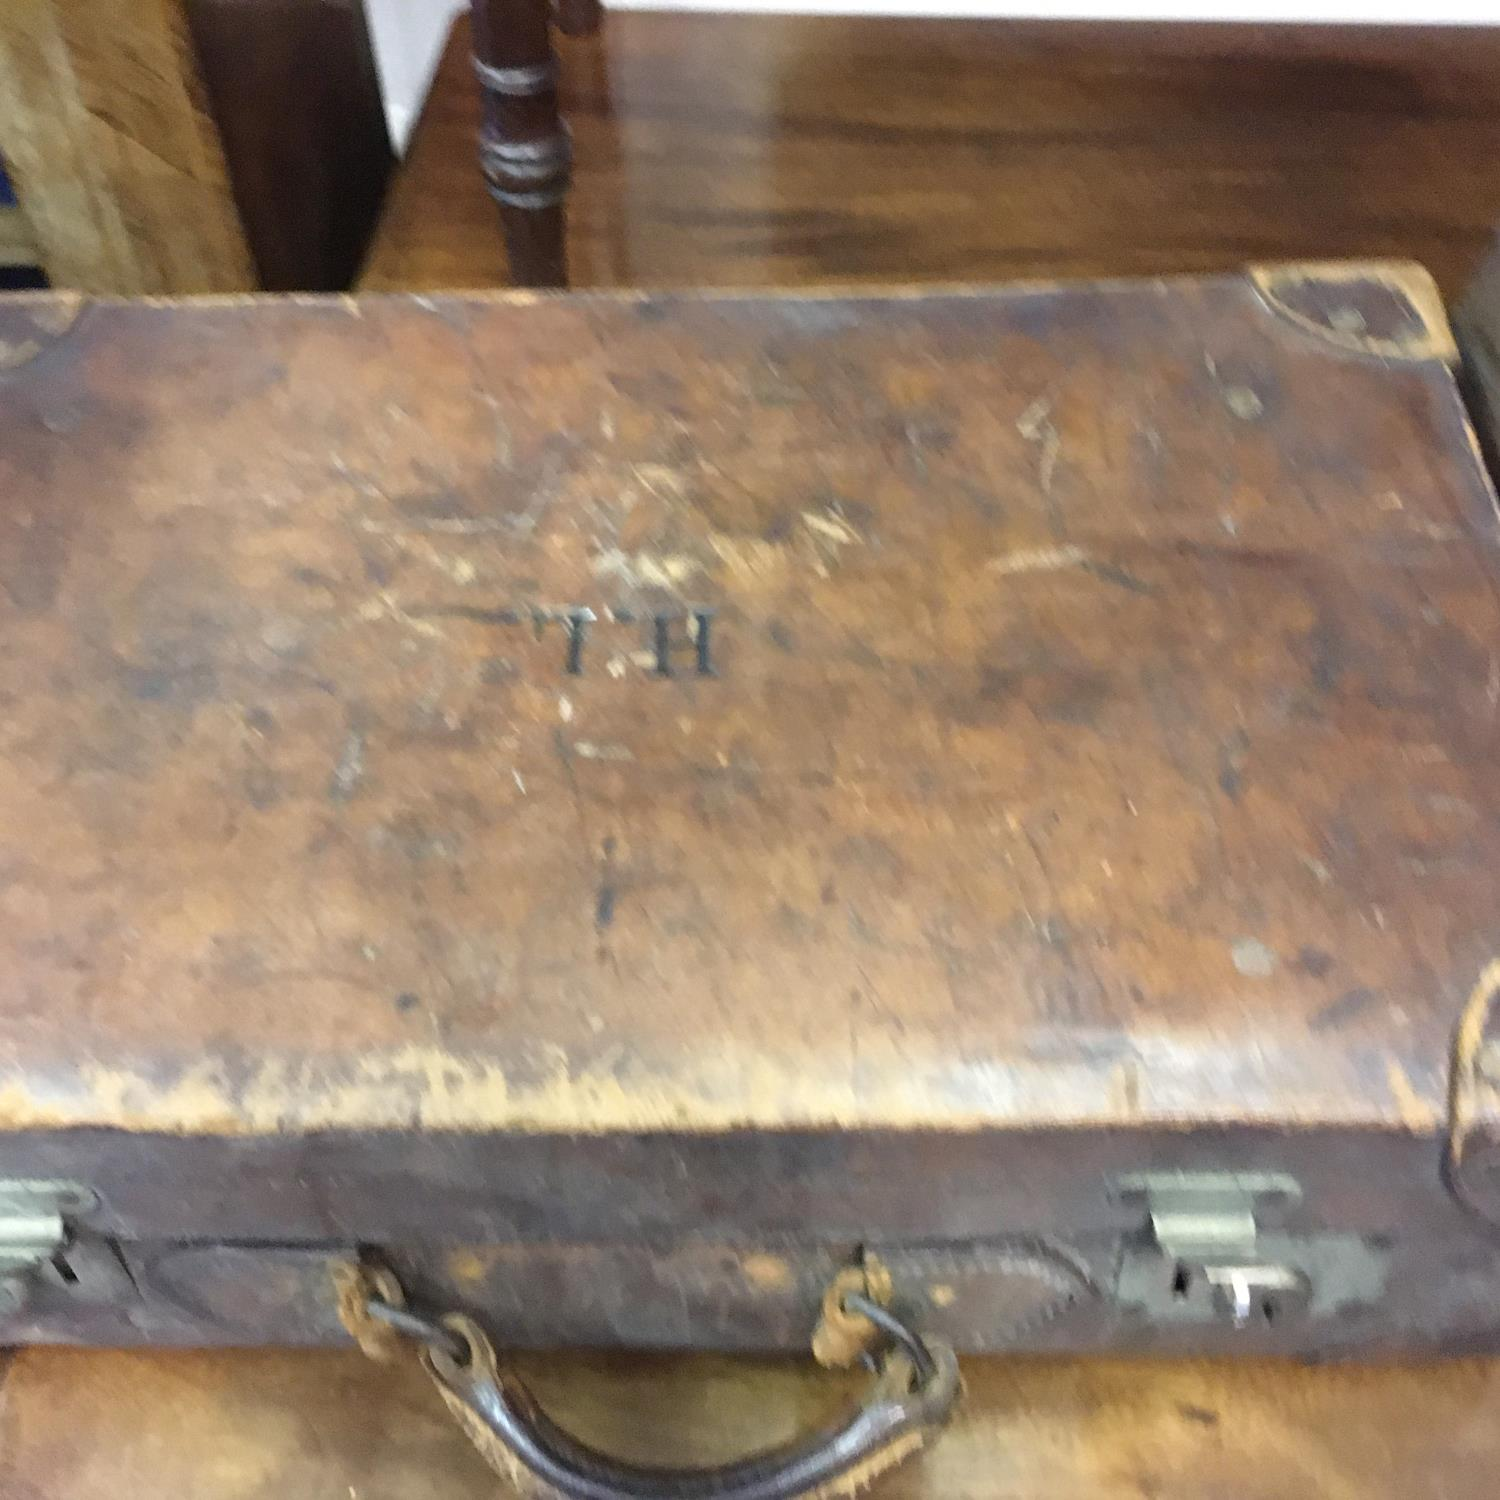 4 x matching antique leather suitcases of graduating size in what appears to be a set of 4, and 1 - Image 8 of 9